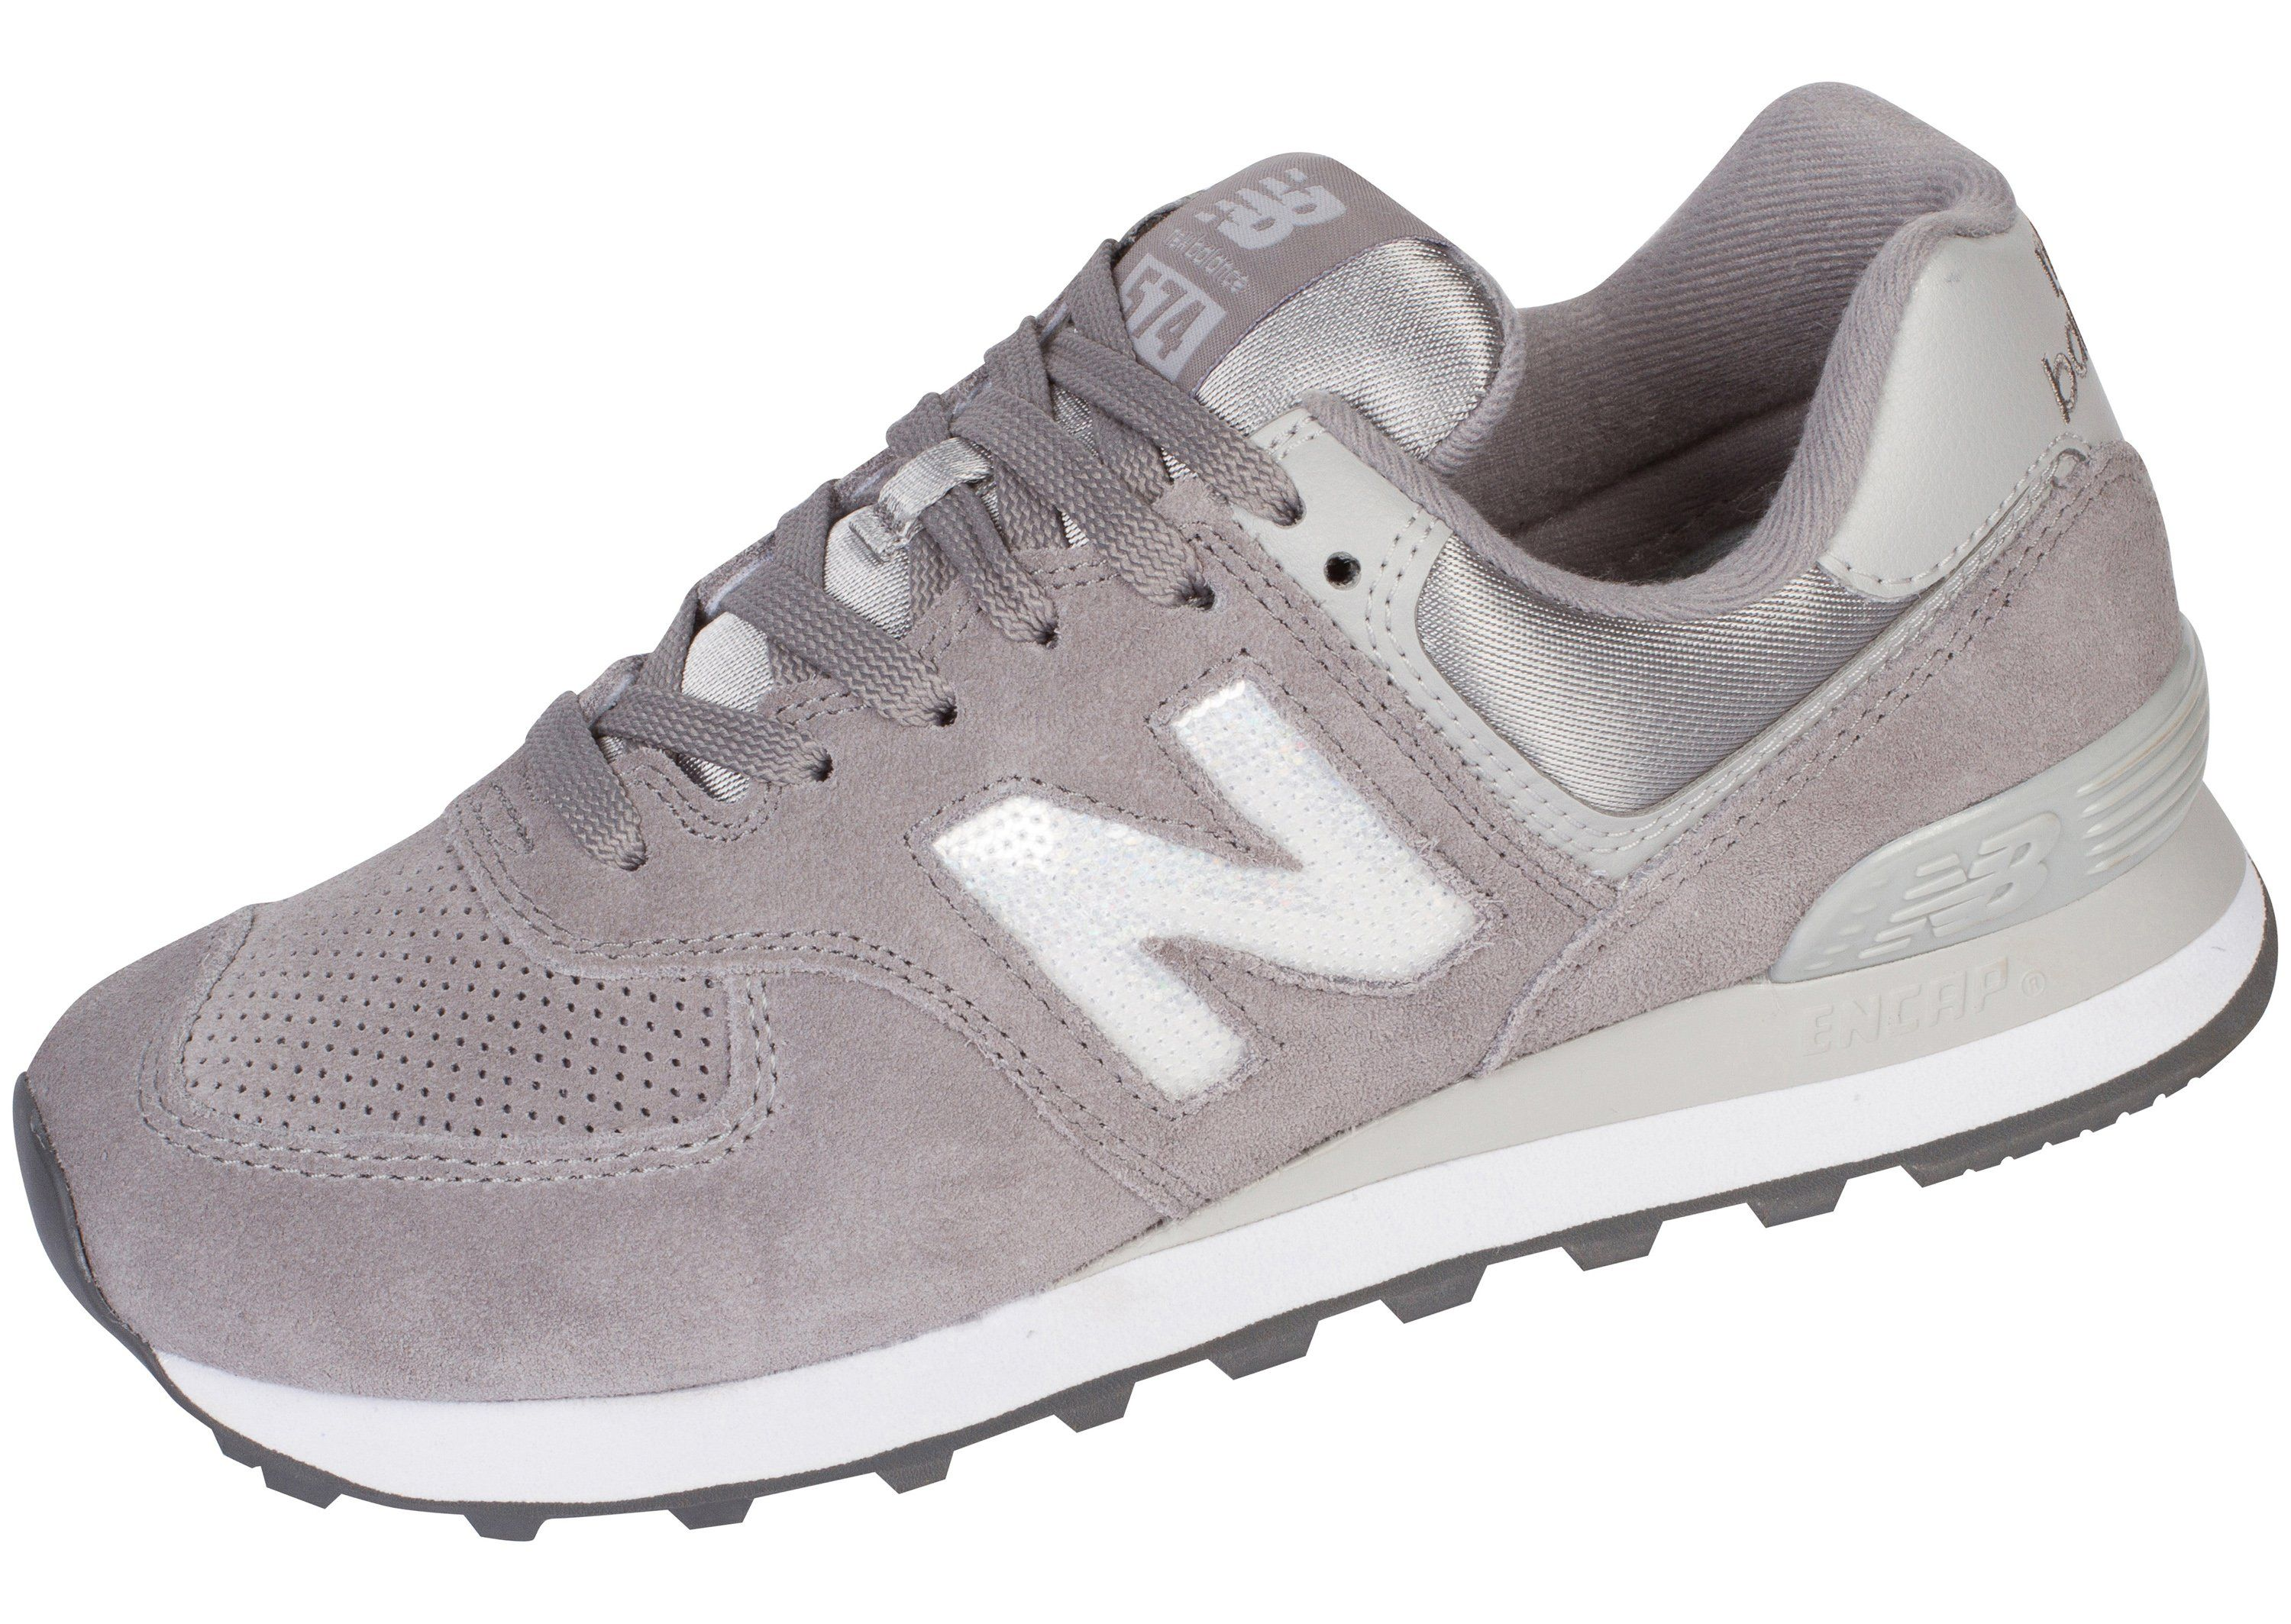 detailed look fd620 768d1 New Balance Womens 574 Holiday Sparkler Marblehead with ...